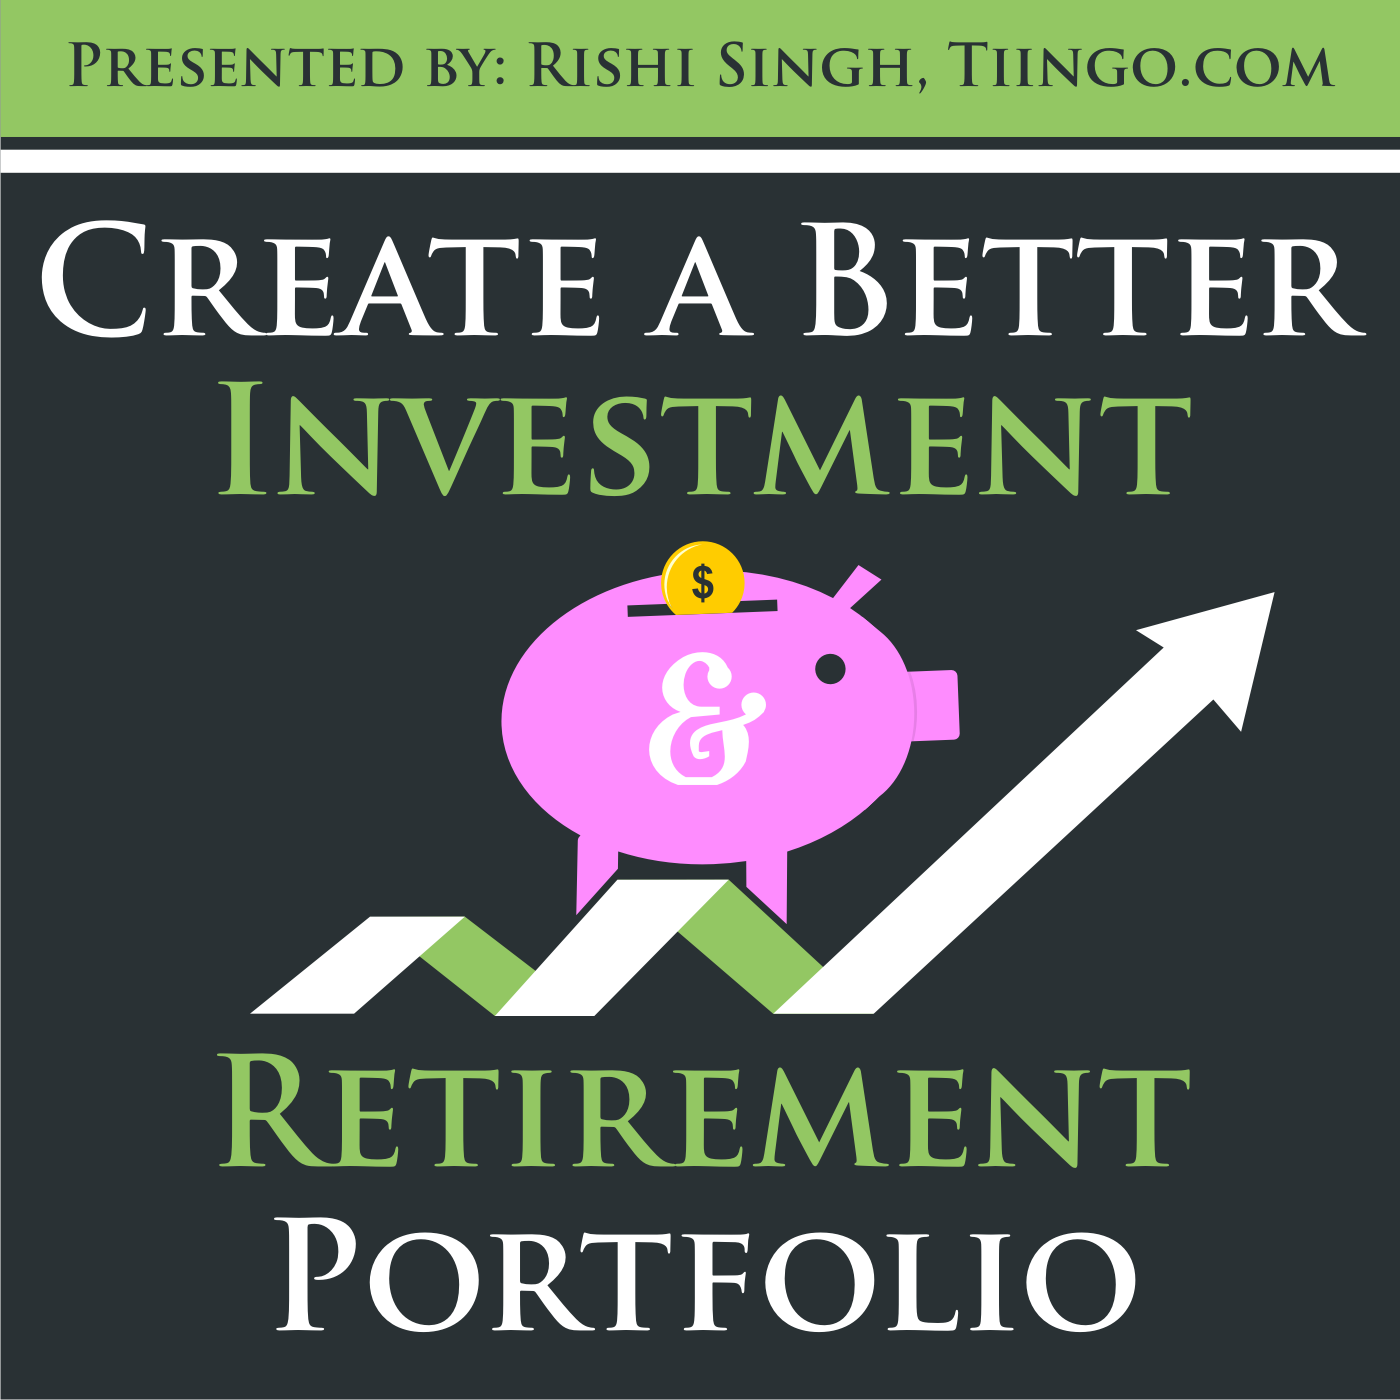 Tiingo Investing: How to Create a Better Investment and Retirement Portfolio